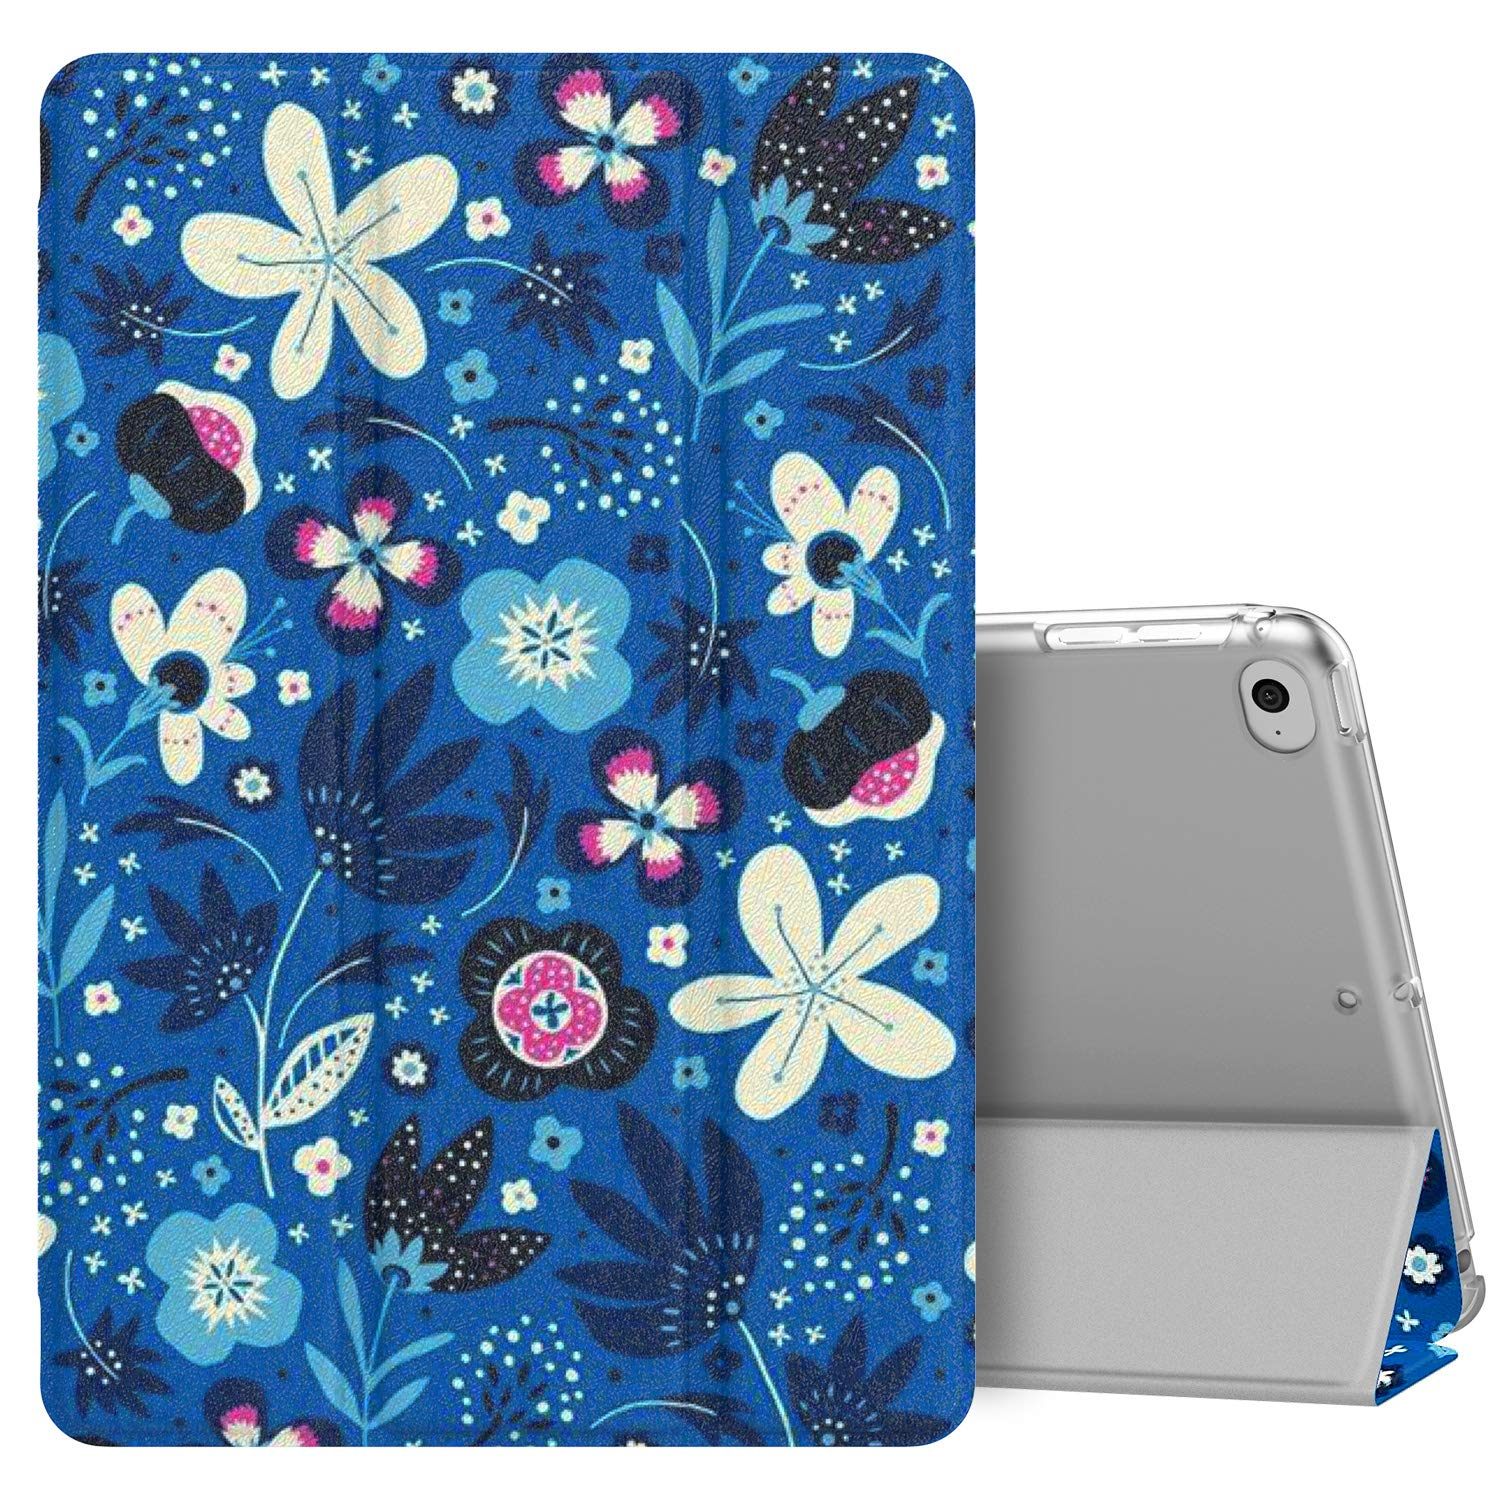 MoKo Case Fit New iPad Mini 5 2019 (5th Generation 7.9 inch), Slim Lightweight Smart Shell Stand Cover with Translucent Frosted Back Protector, with Auto Wake/Sleep - Blue Flowers